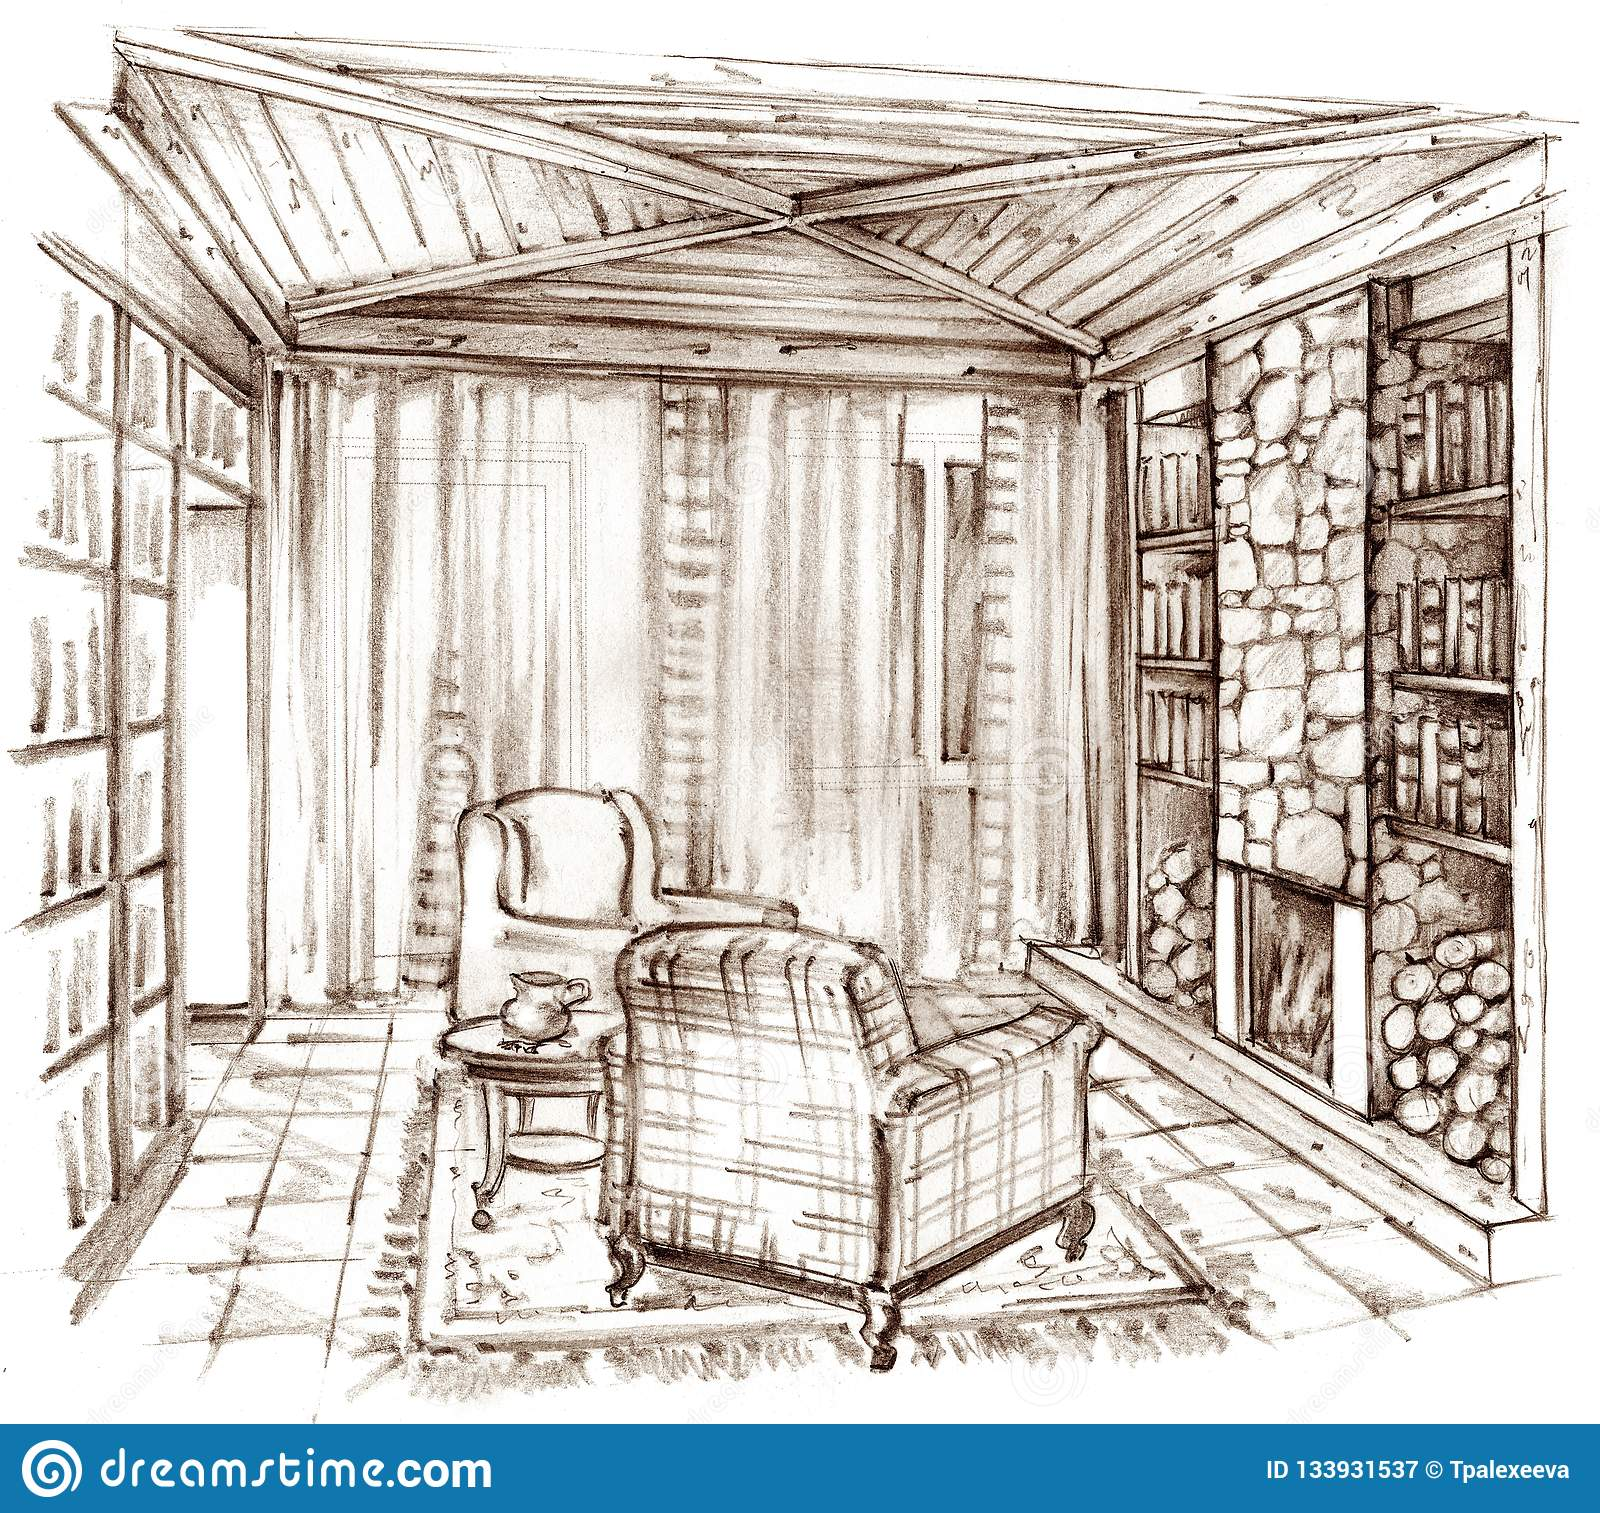 Pencil drawing of a classic library with a fireplace